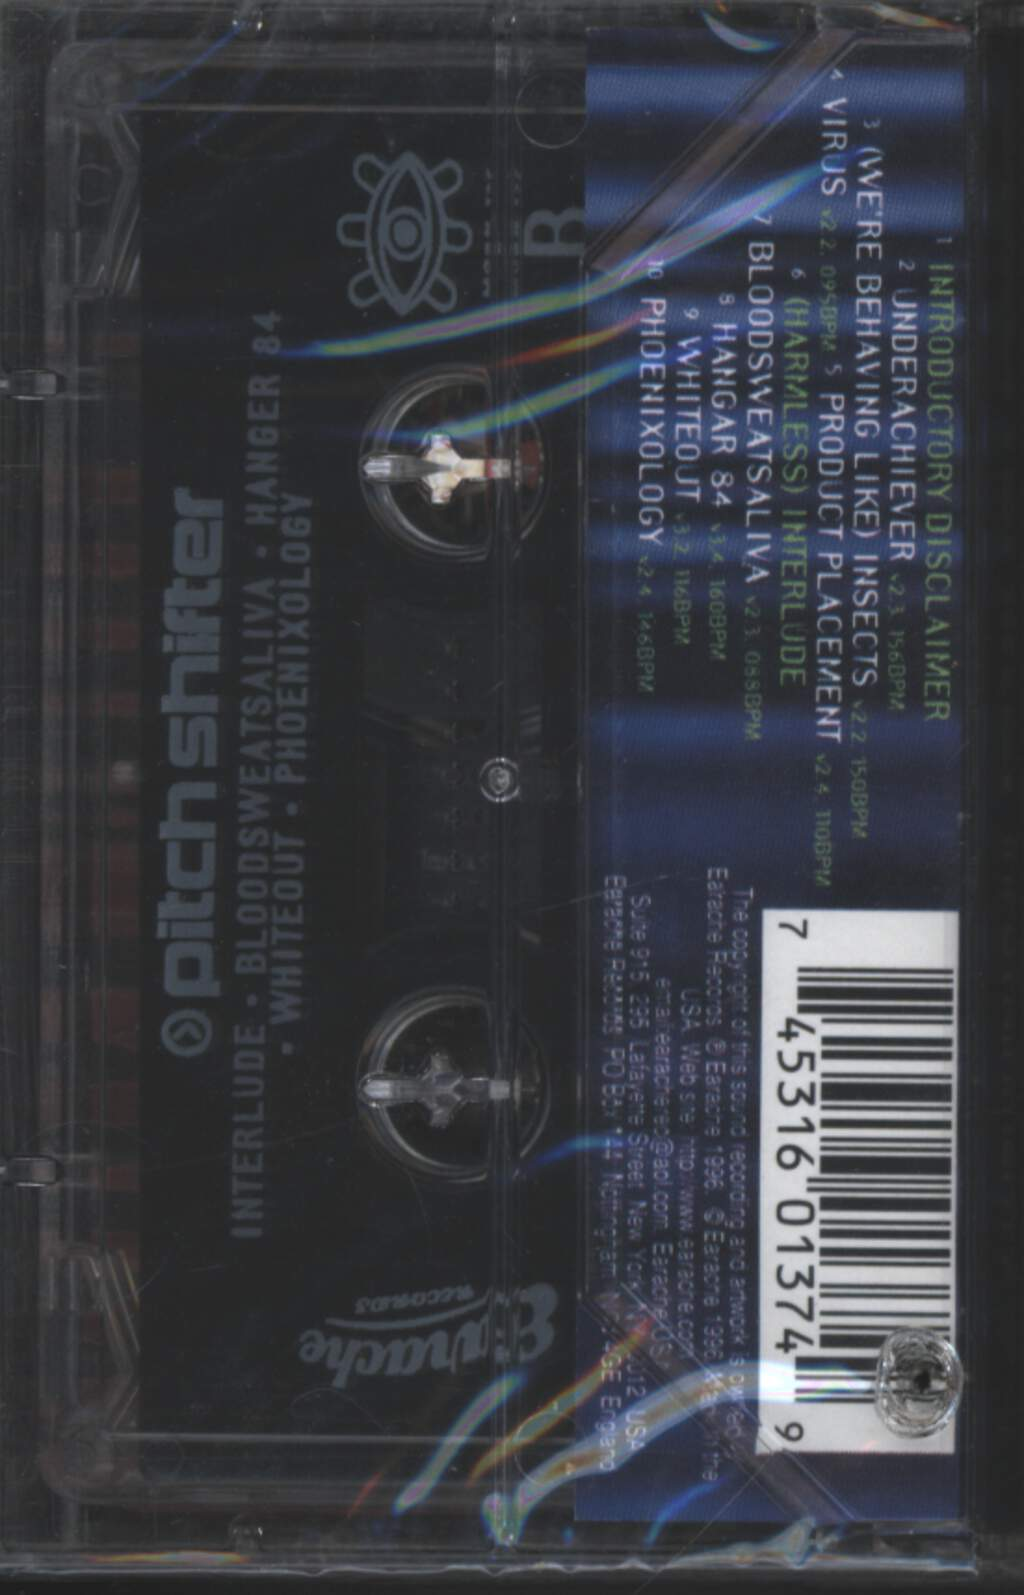 Pitchshifter: Infotainment?, Tape